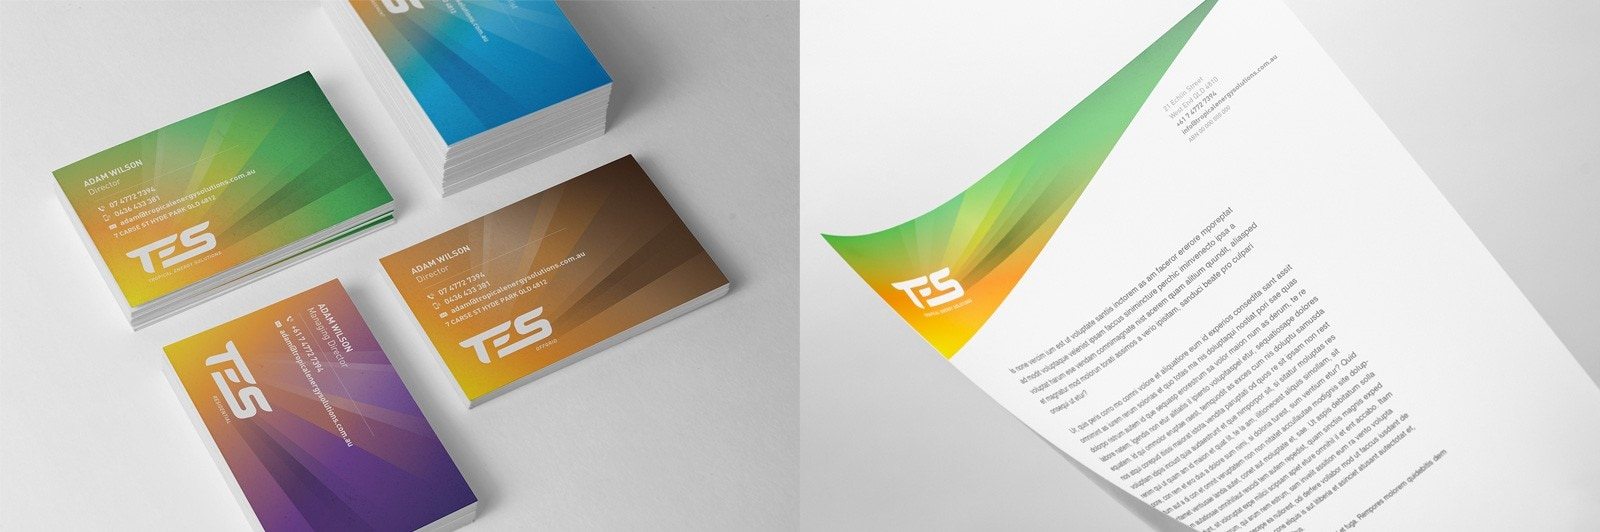 Stationery by Zephyrmedia